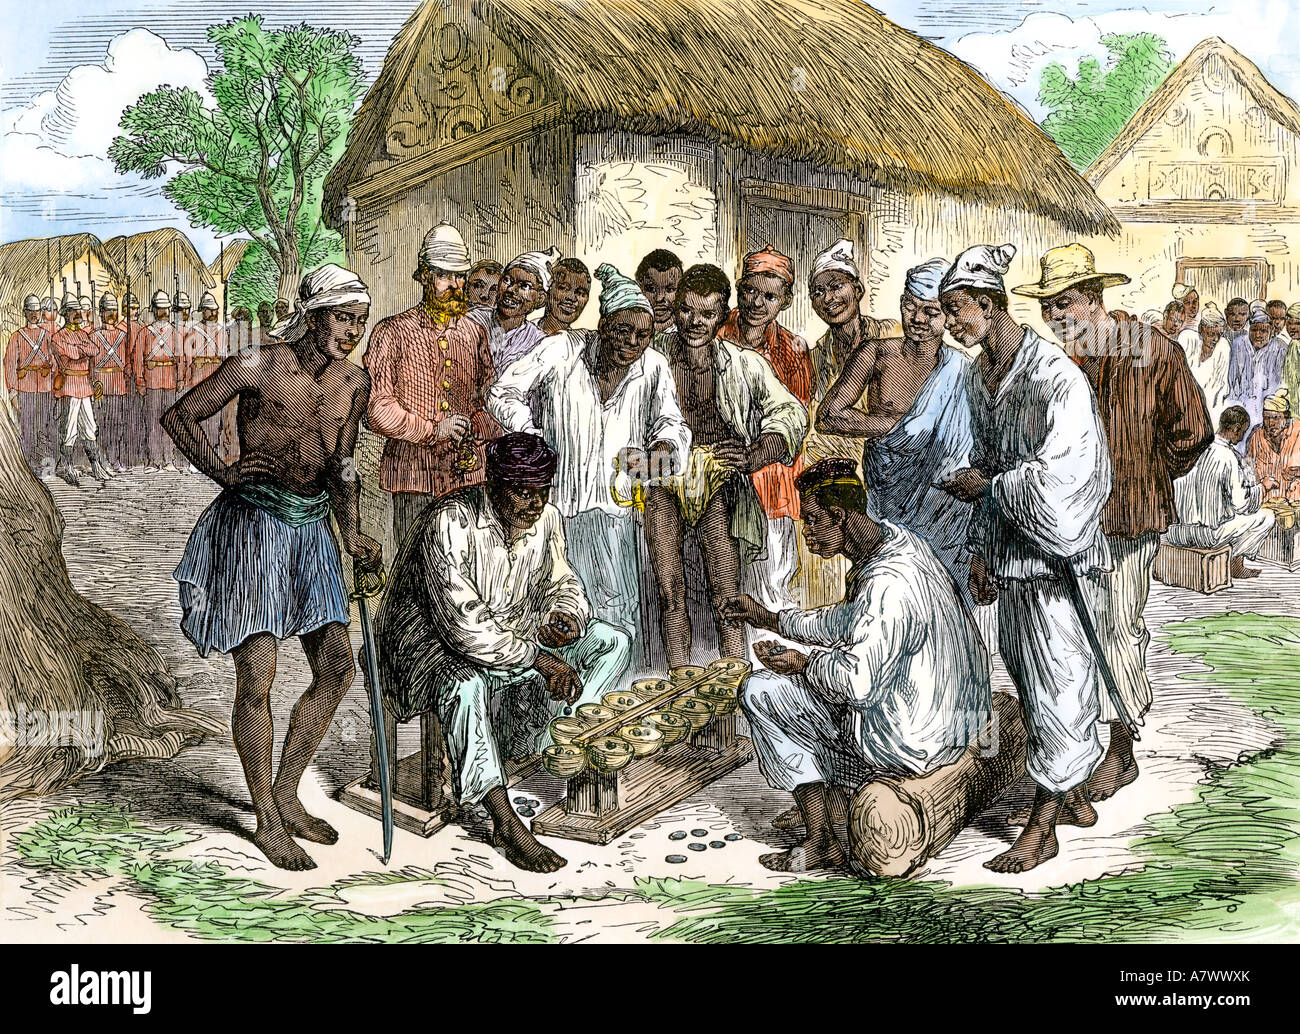 Native soldiers playing warry in Ashanti Colony Africa 1870s. Hand-colored woodcut - Stock Image